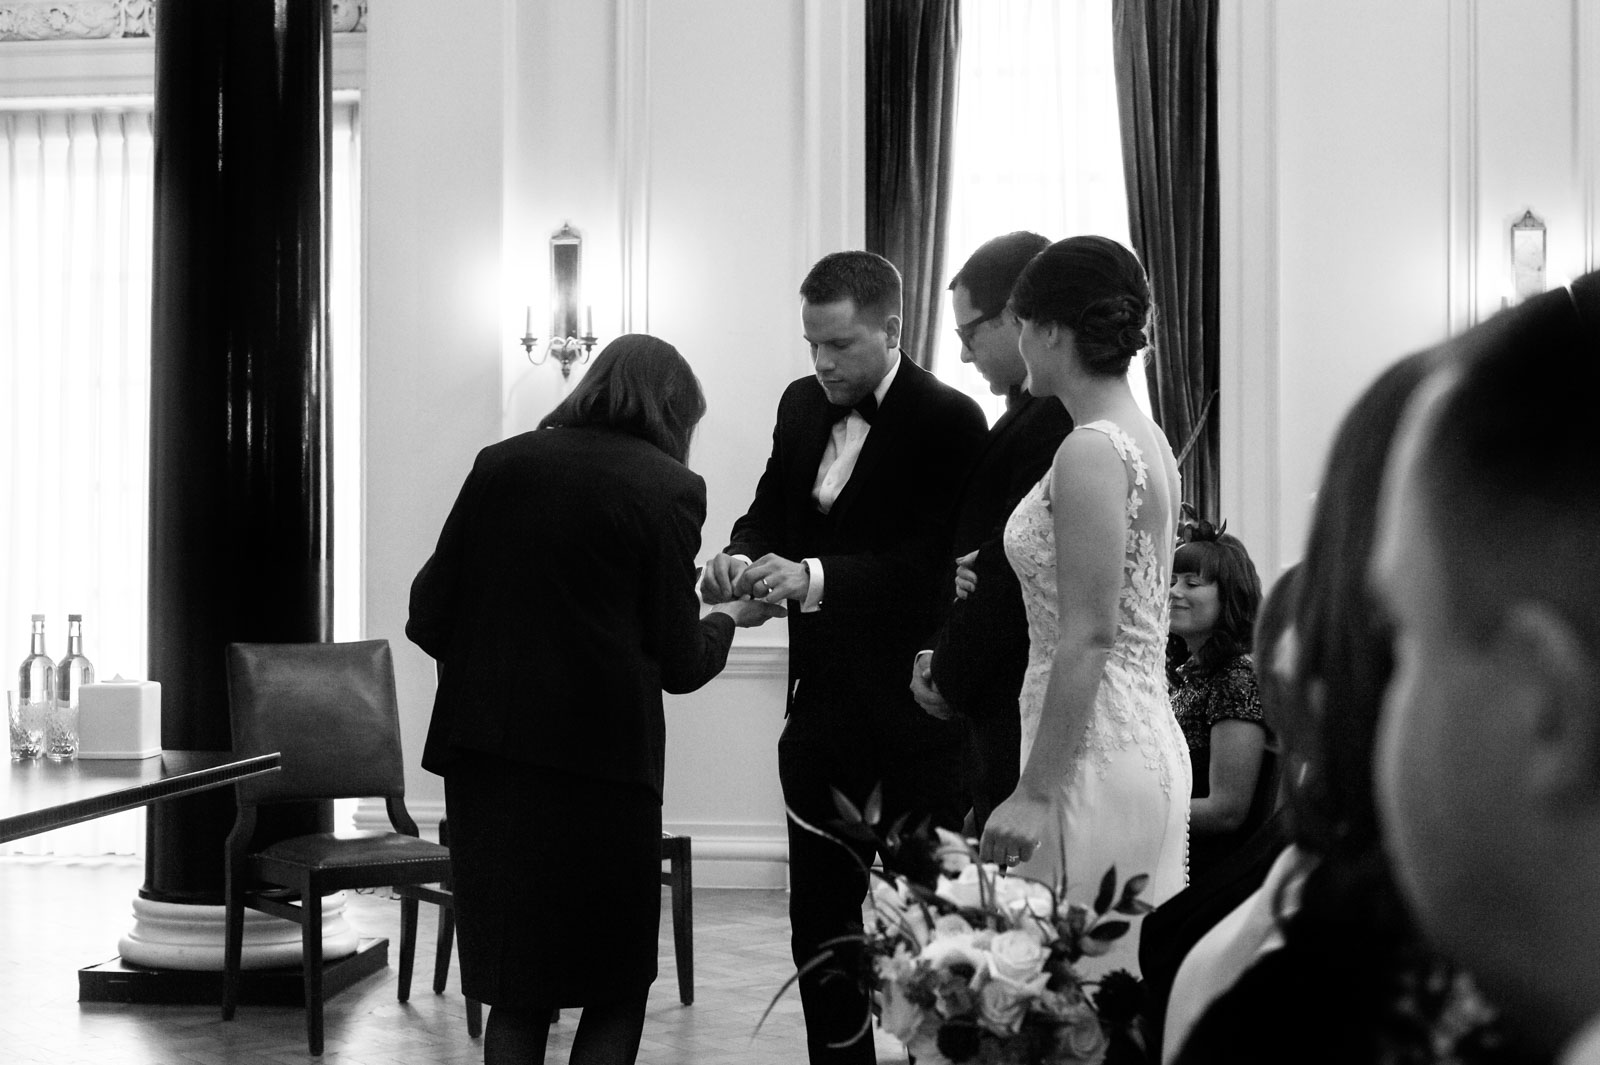 Best man taking rings during ceremony